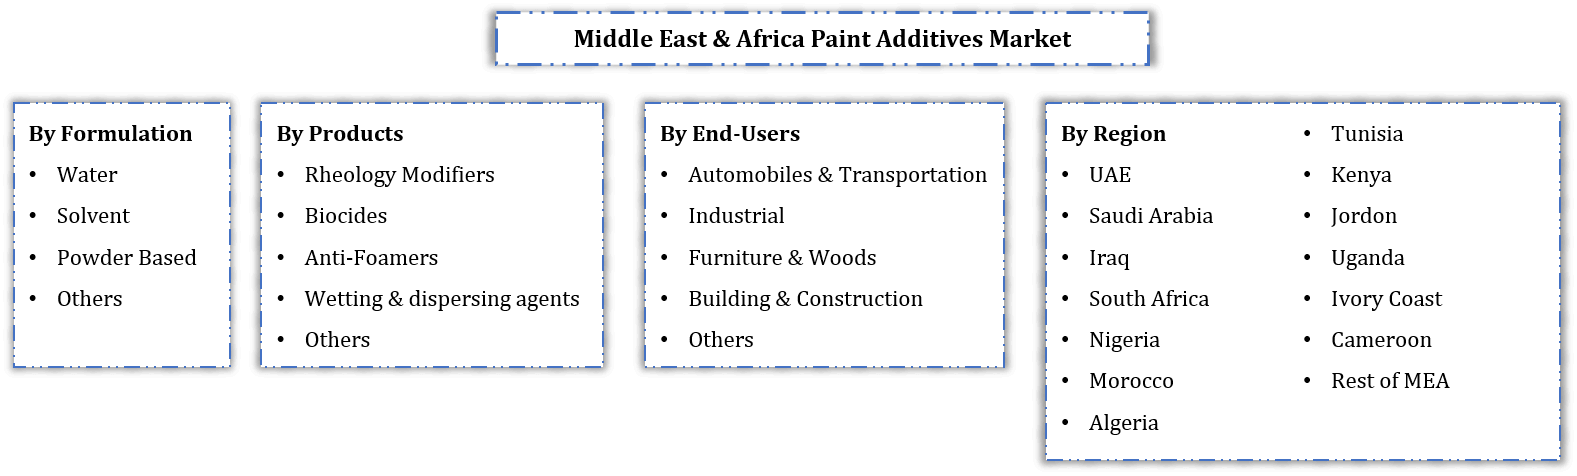 MEA Paint Additives Market Research Report: Forecast (2021-2026)